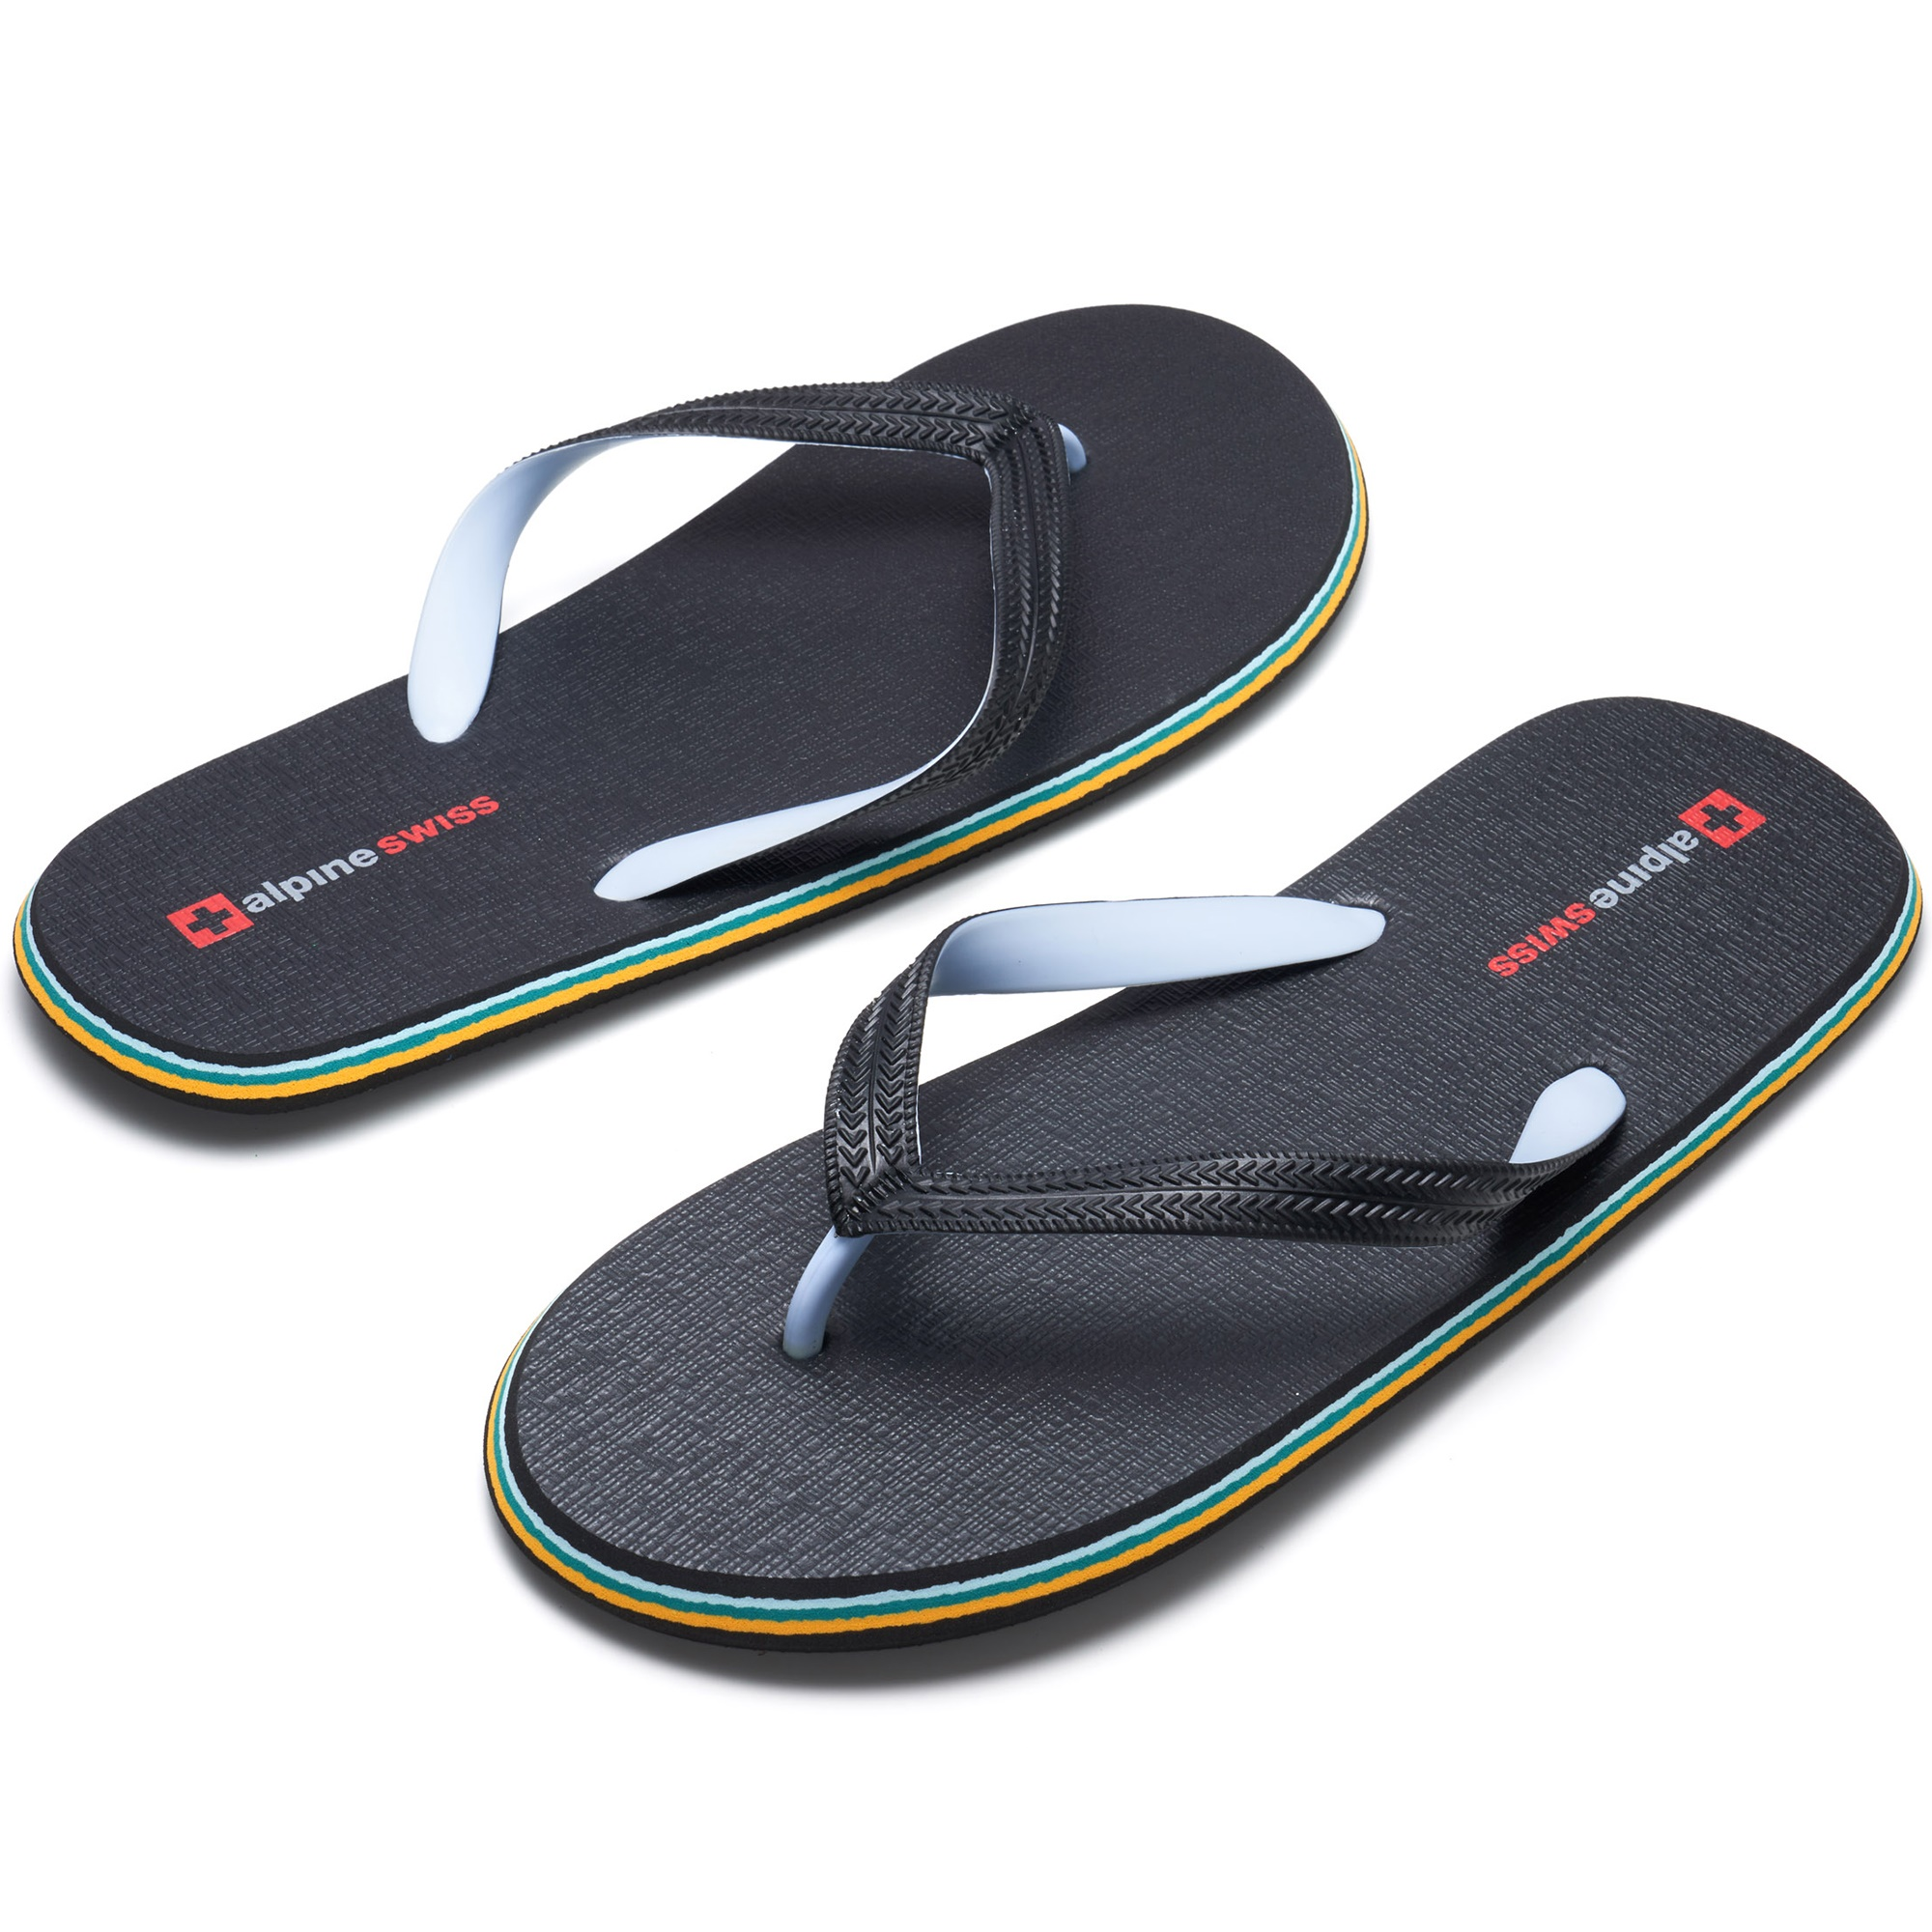 Alpine-Swiss-Mens-Flip-Flops-Beach-Sandals-Lightweight-EVA-Sole-Comfort-Thongs thumbnail 20